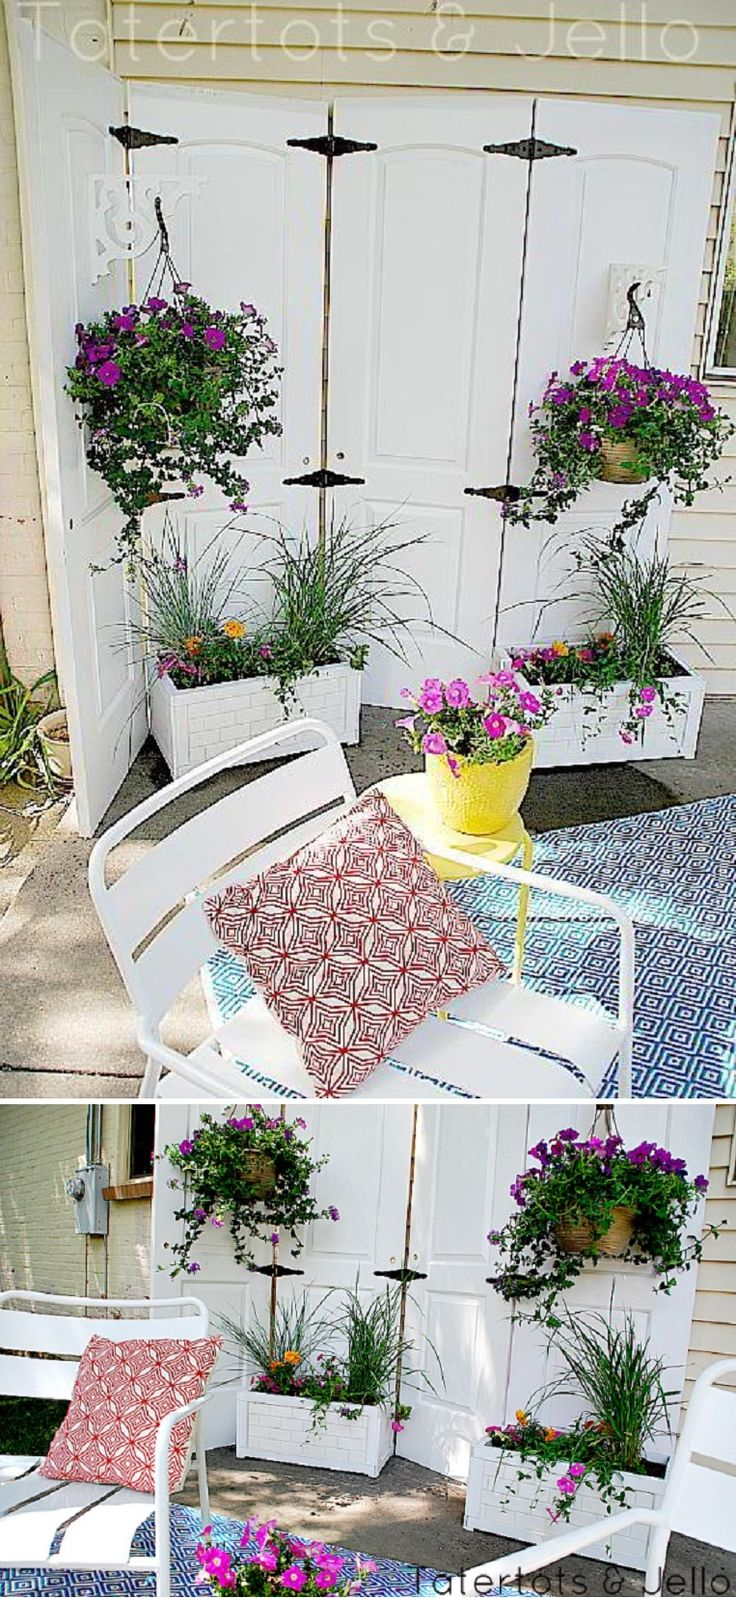 21 best images about backyard upgrades on pinterest patio